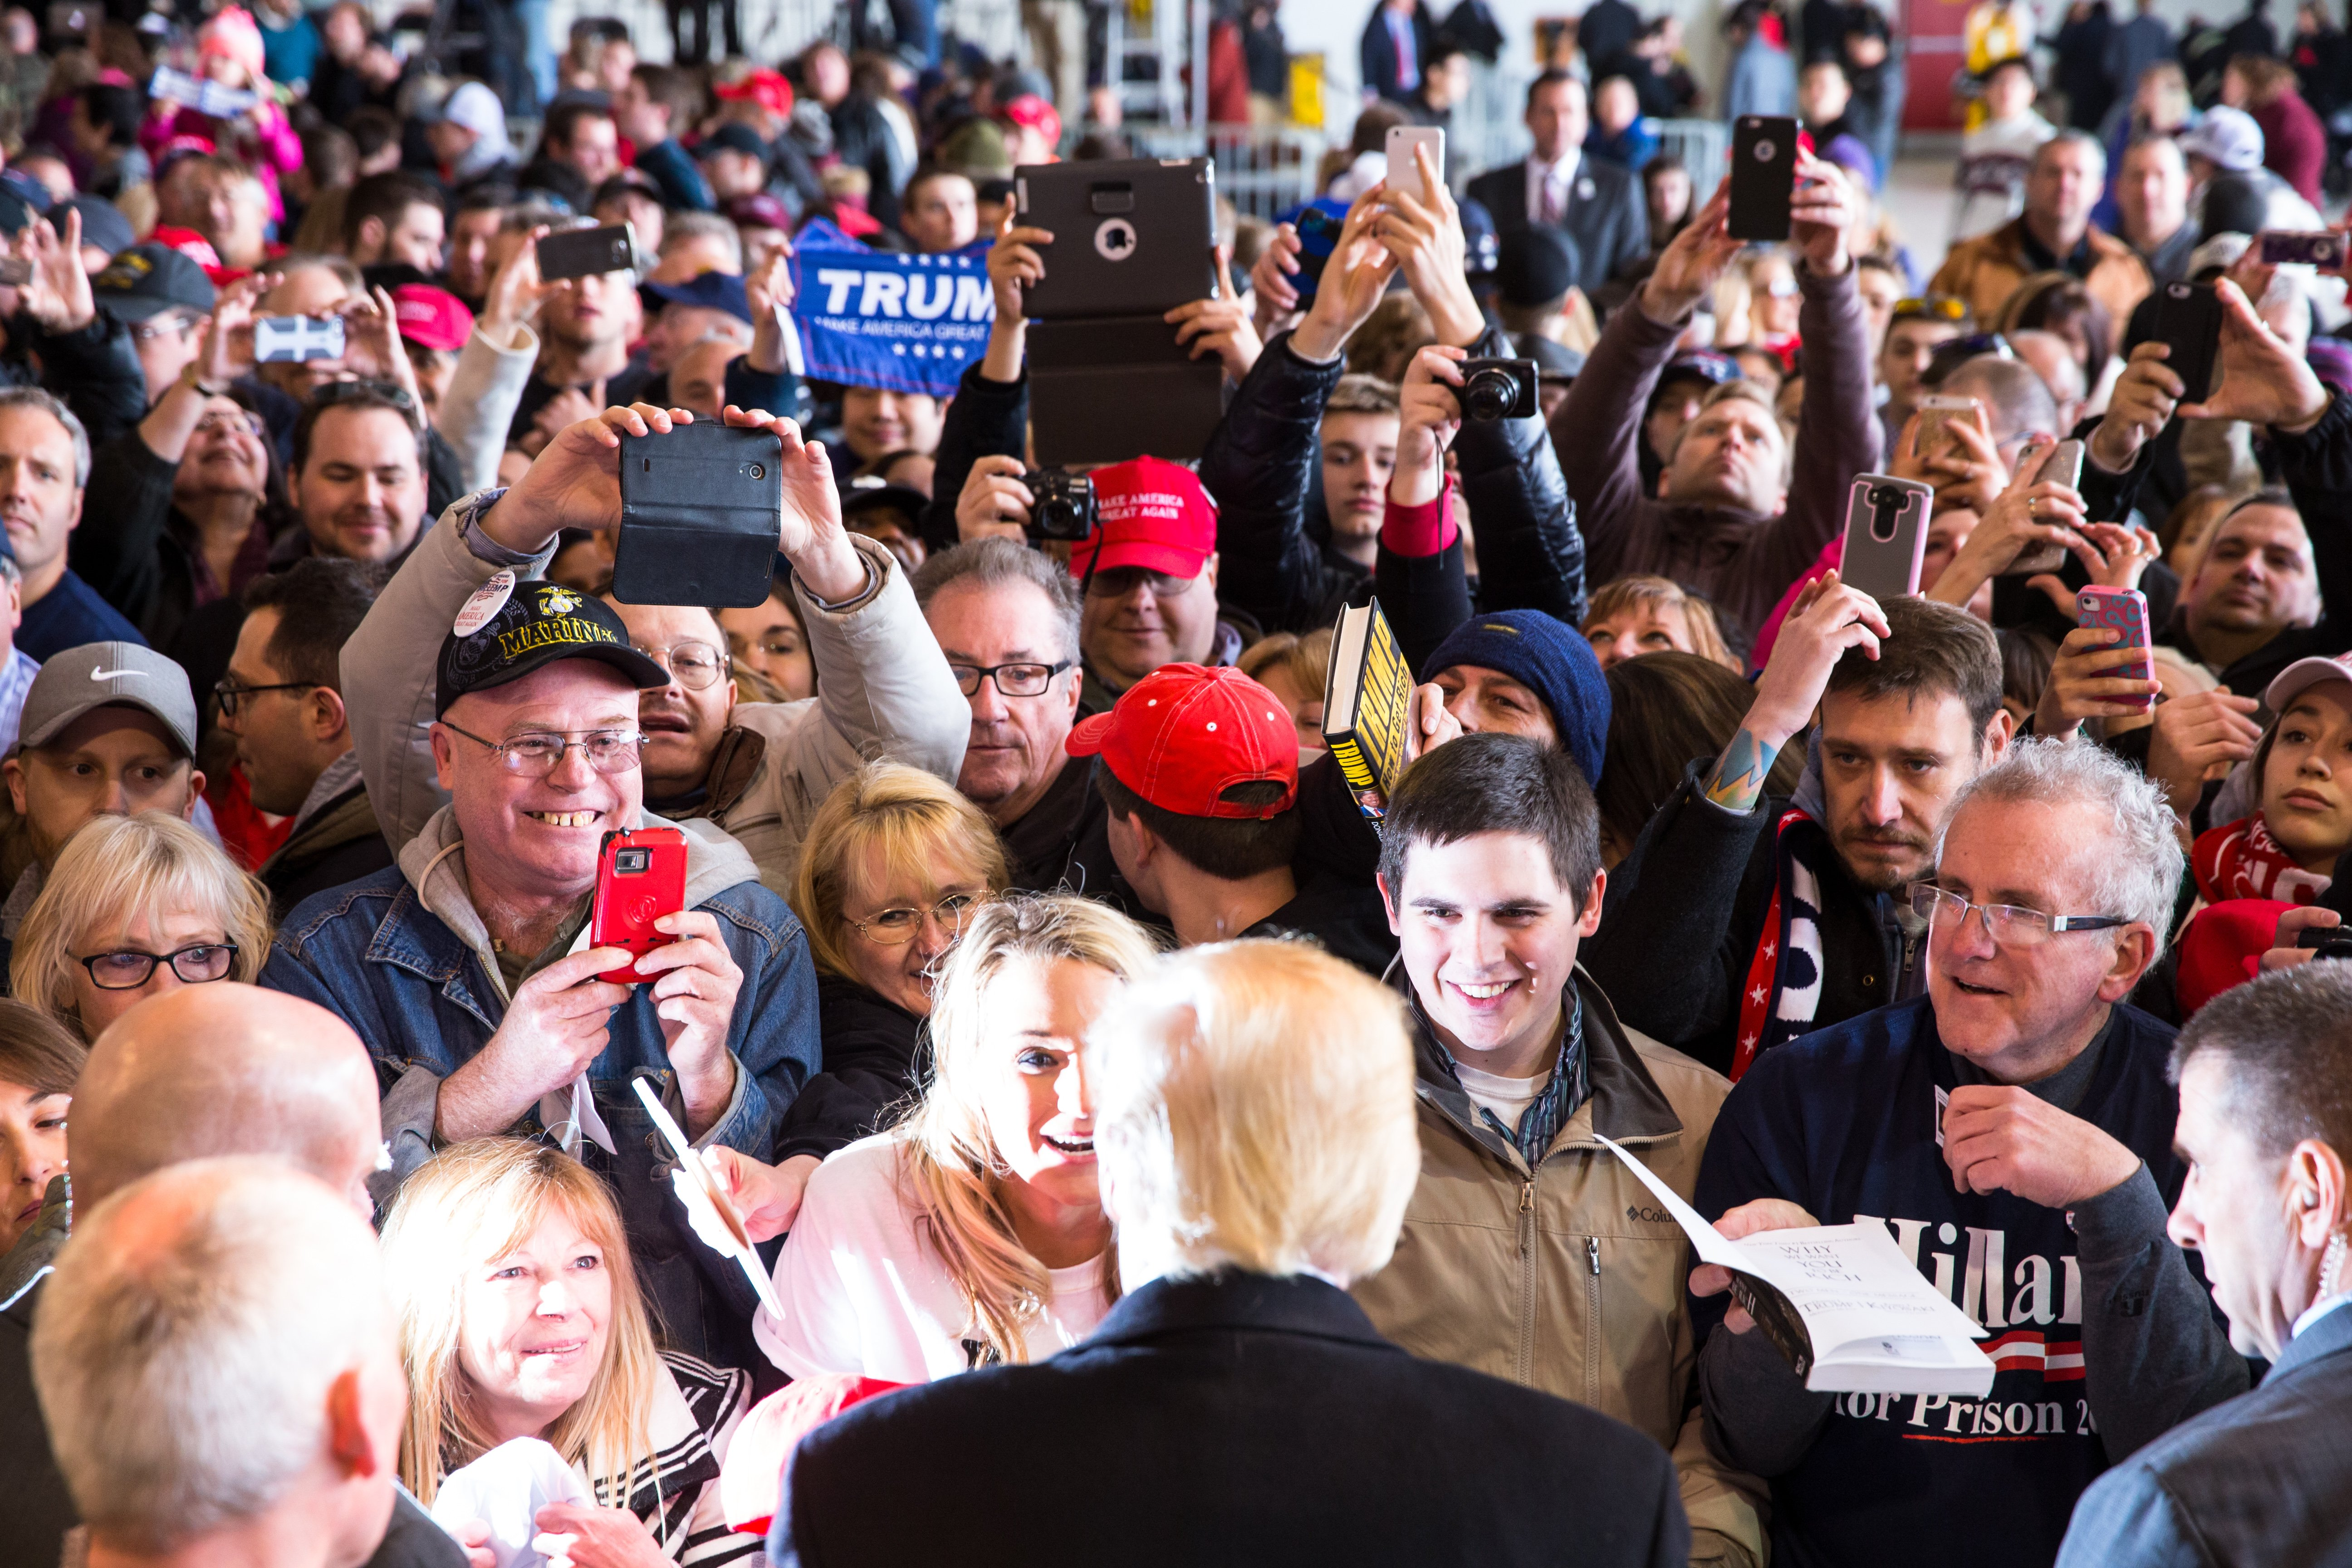 Republican presidential candidate Donald Trump greets the crowd at a rally for his campaign in Rochester, New York on April 10, 2016.